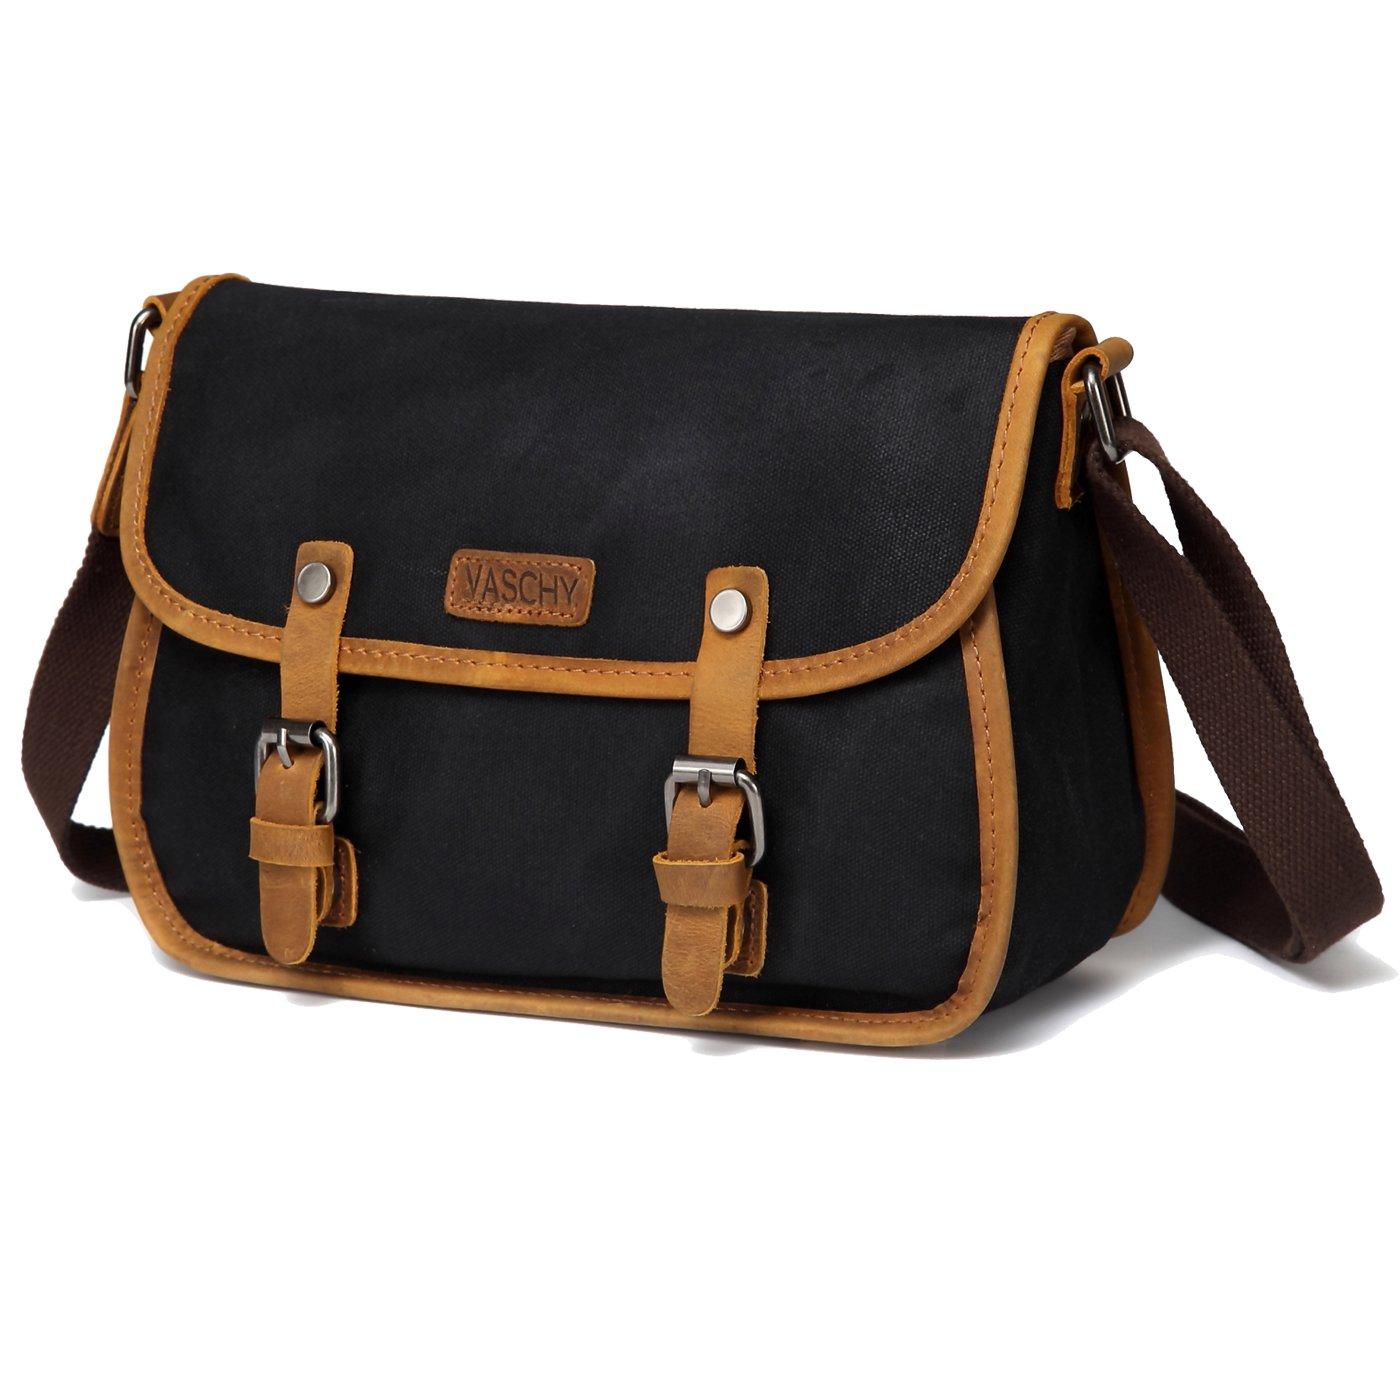 Crossbody Bag for Women,VASCHY Vintage Leather Waxed Canvas Flap Small Shoulder Bag for Women Black